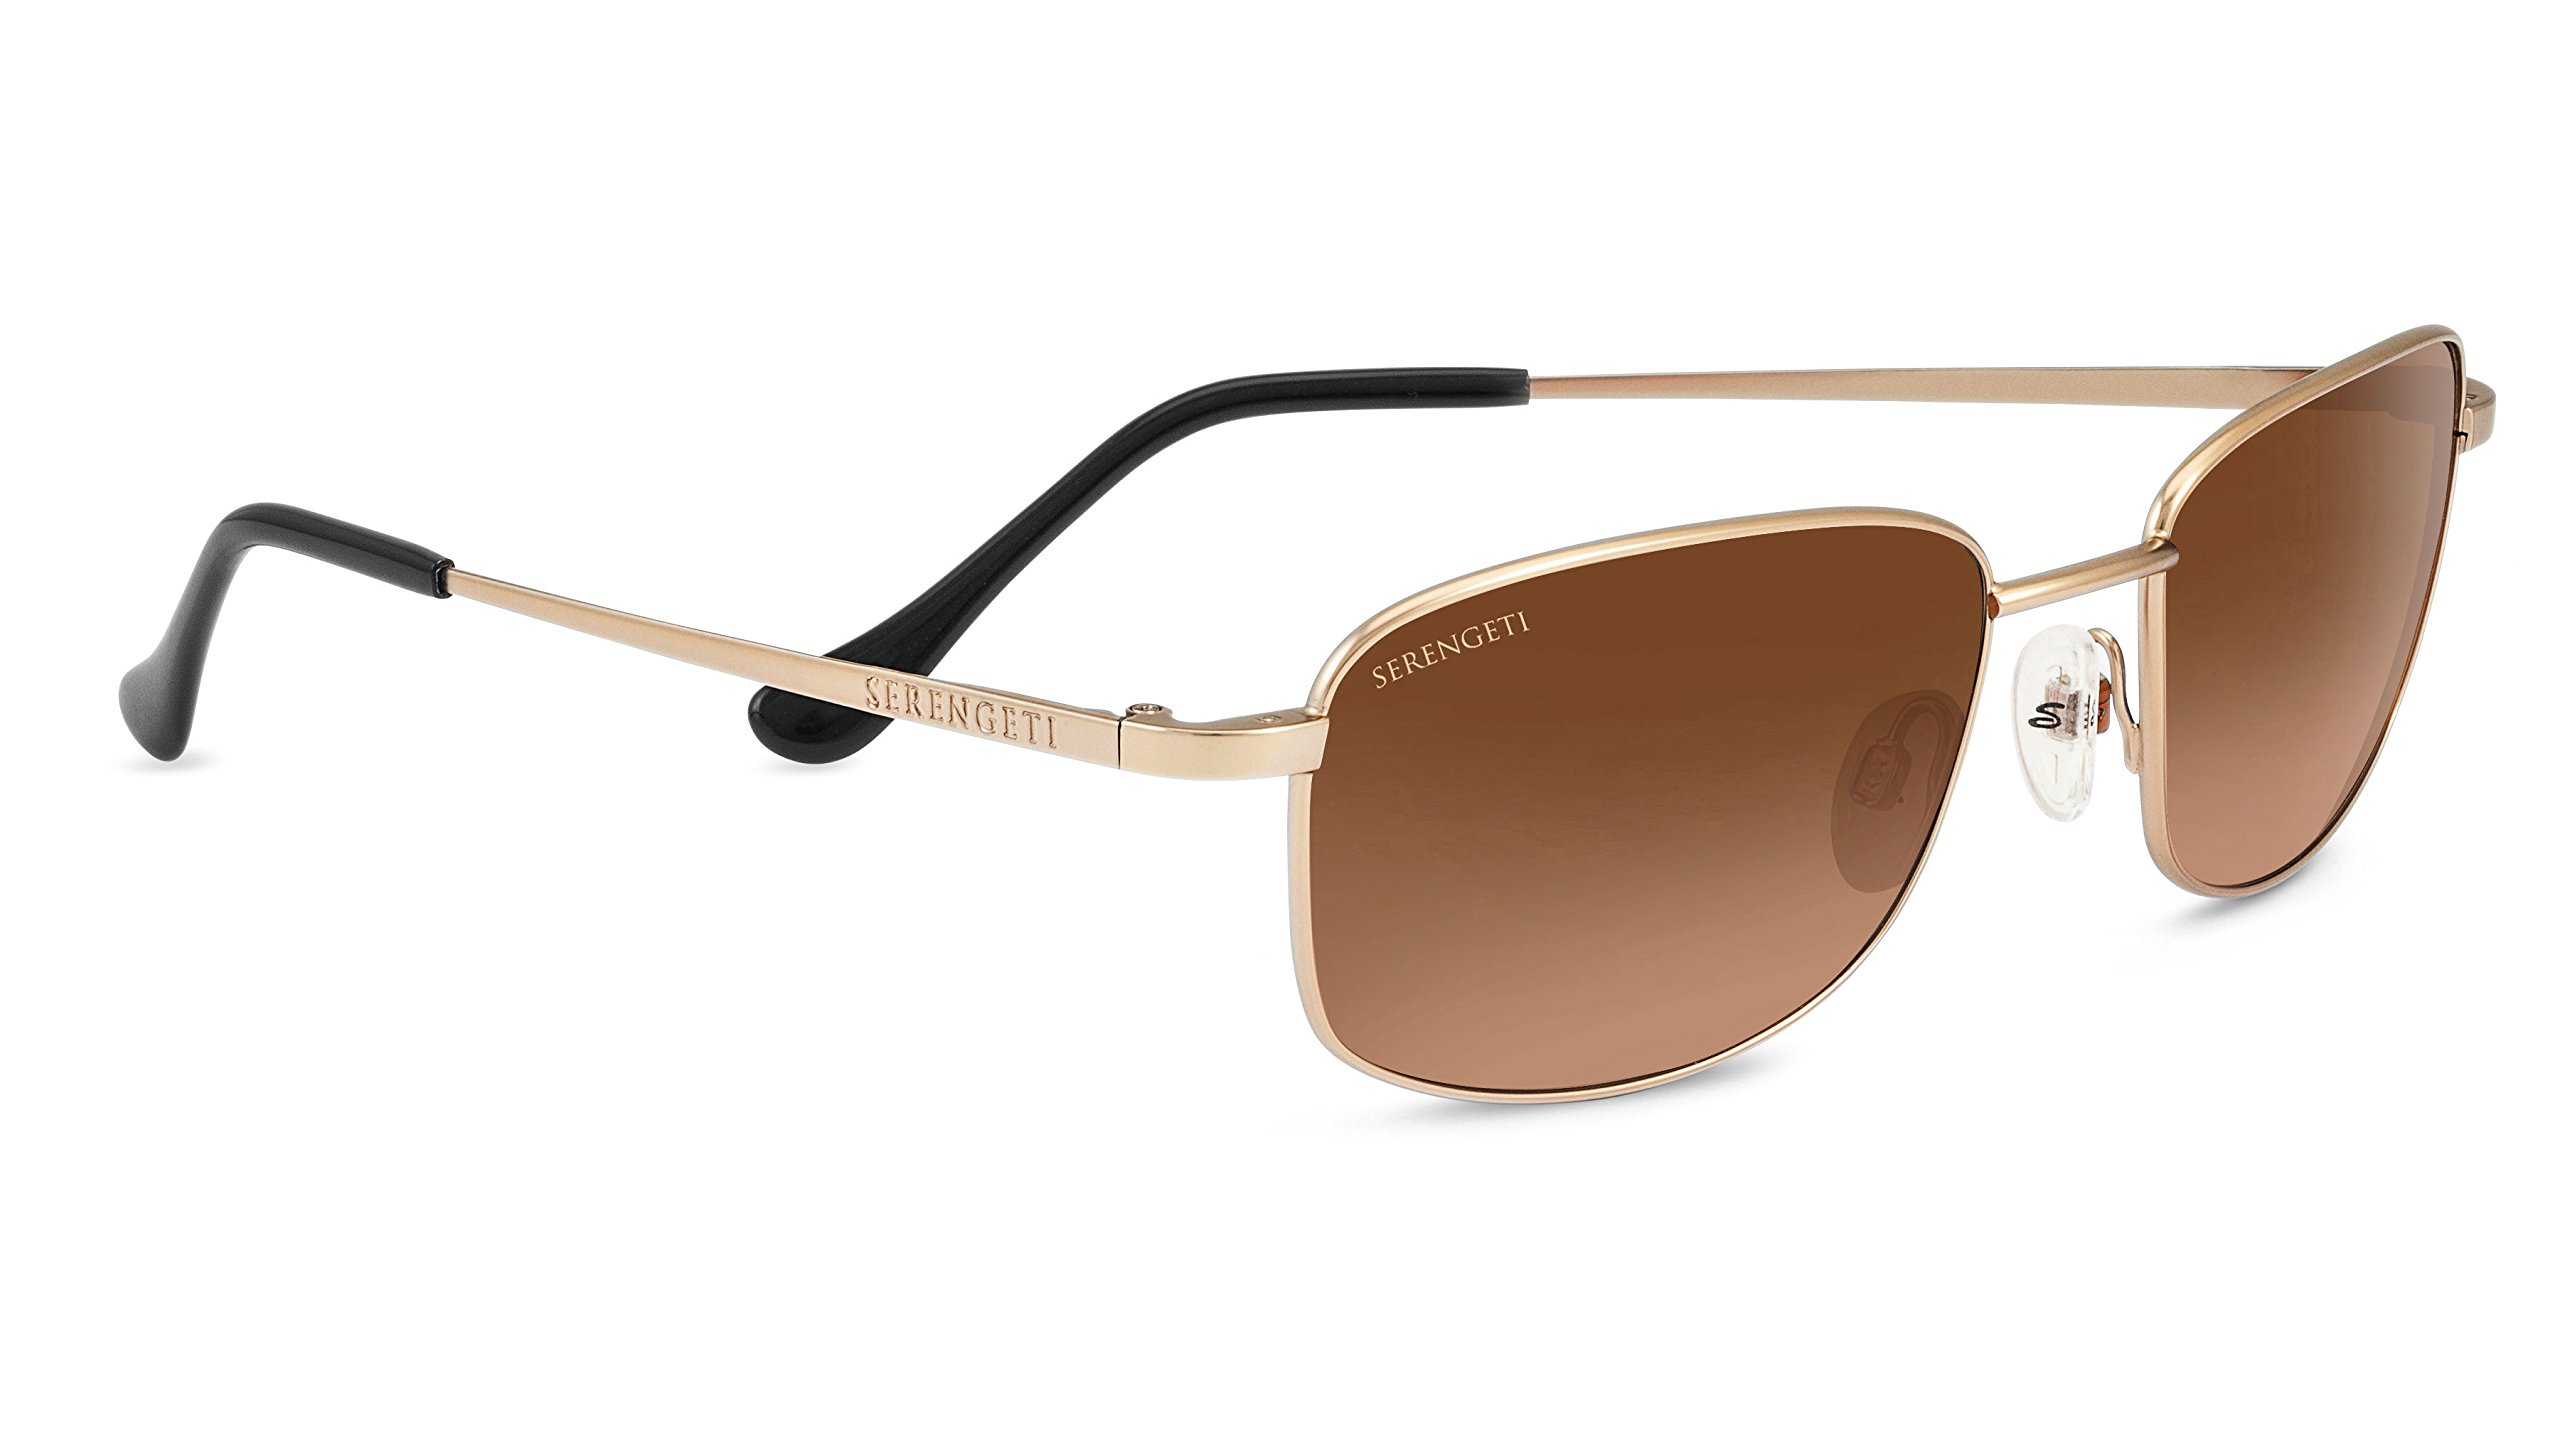 Serengeti 8385 Palinuro Drivers Gradient Sunglasses, Satin Soft Gold